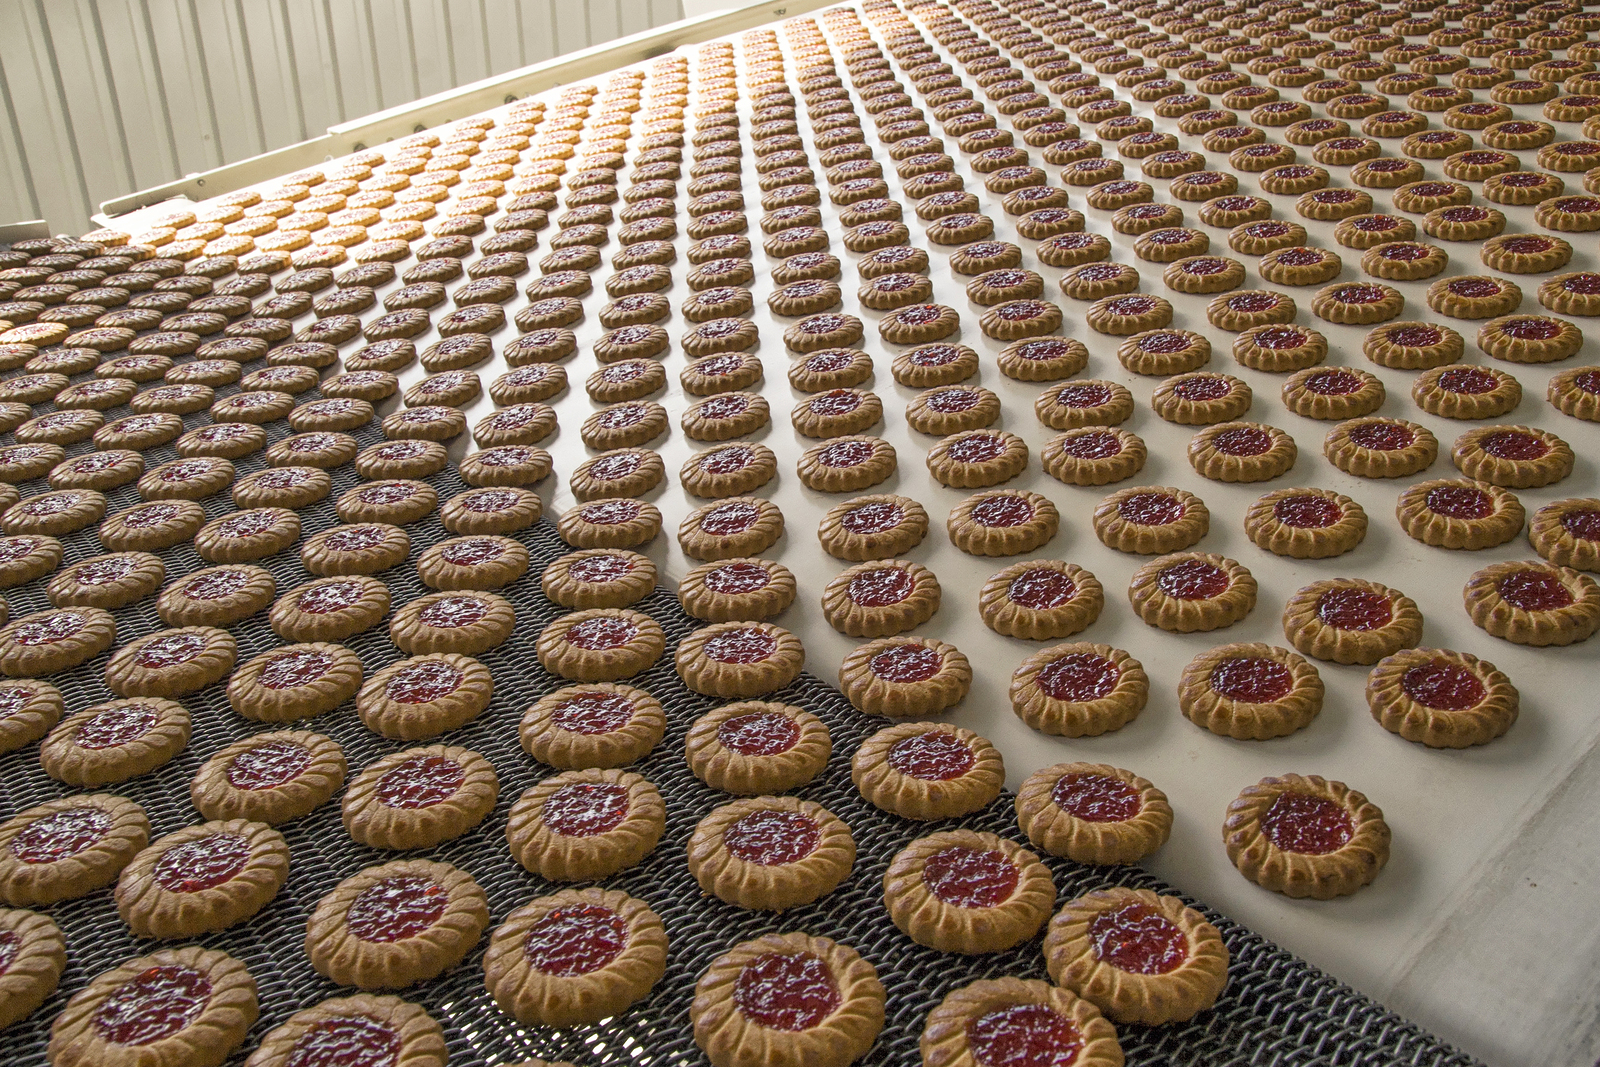 Production Of Cookies On Conveyor, Close Up